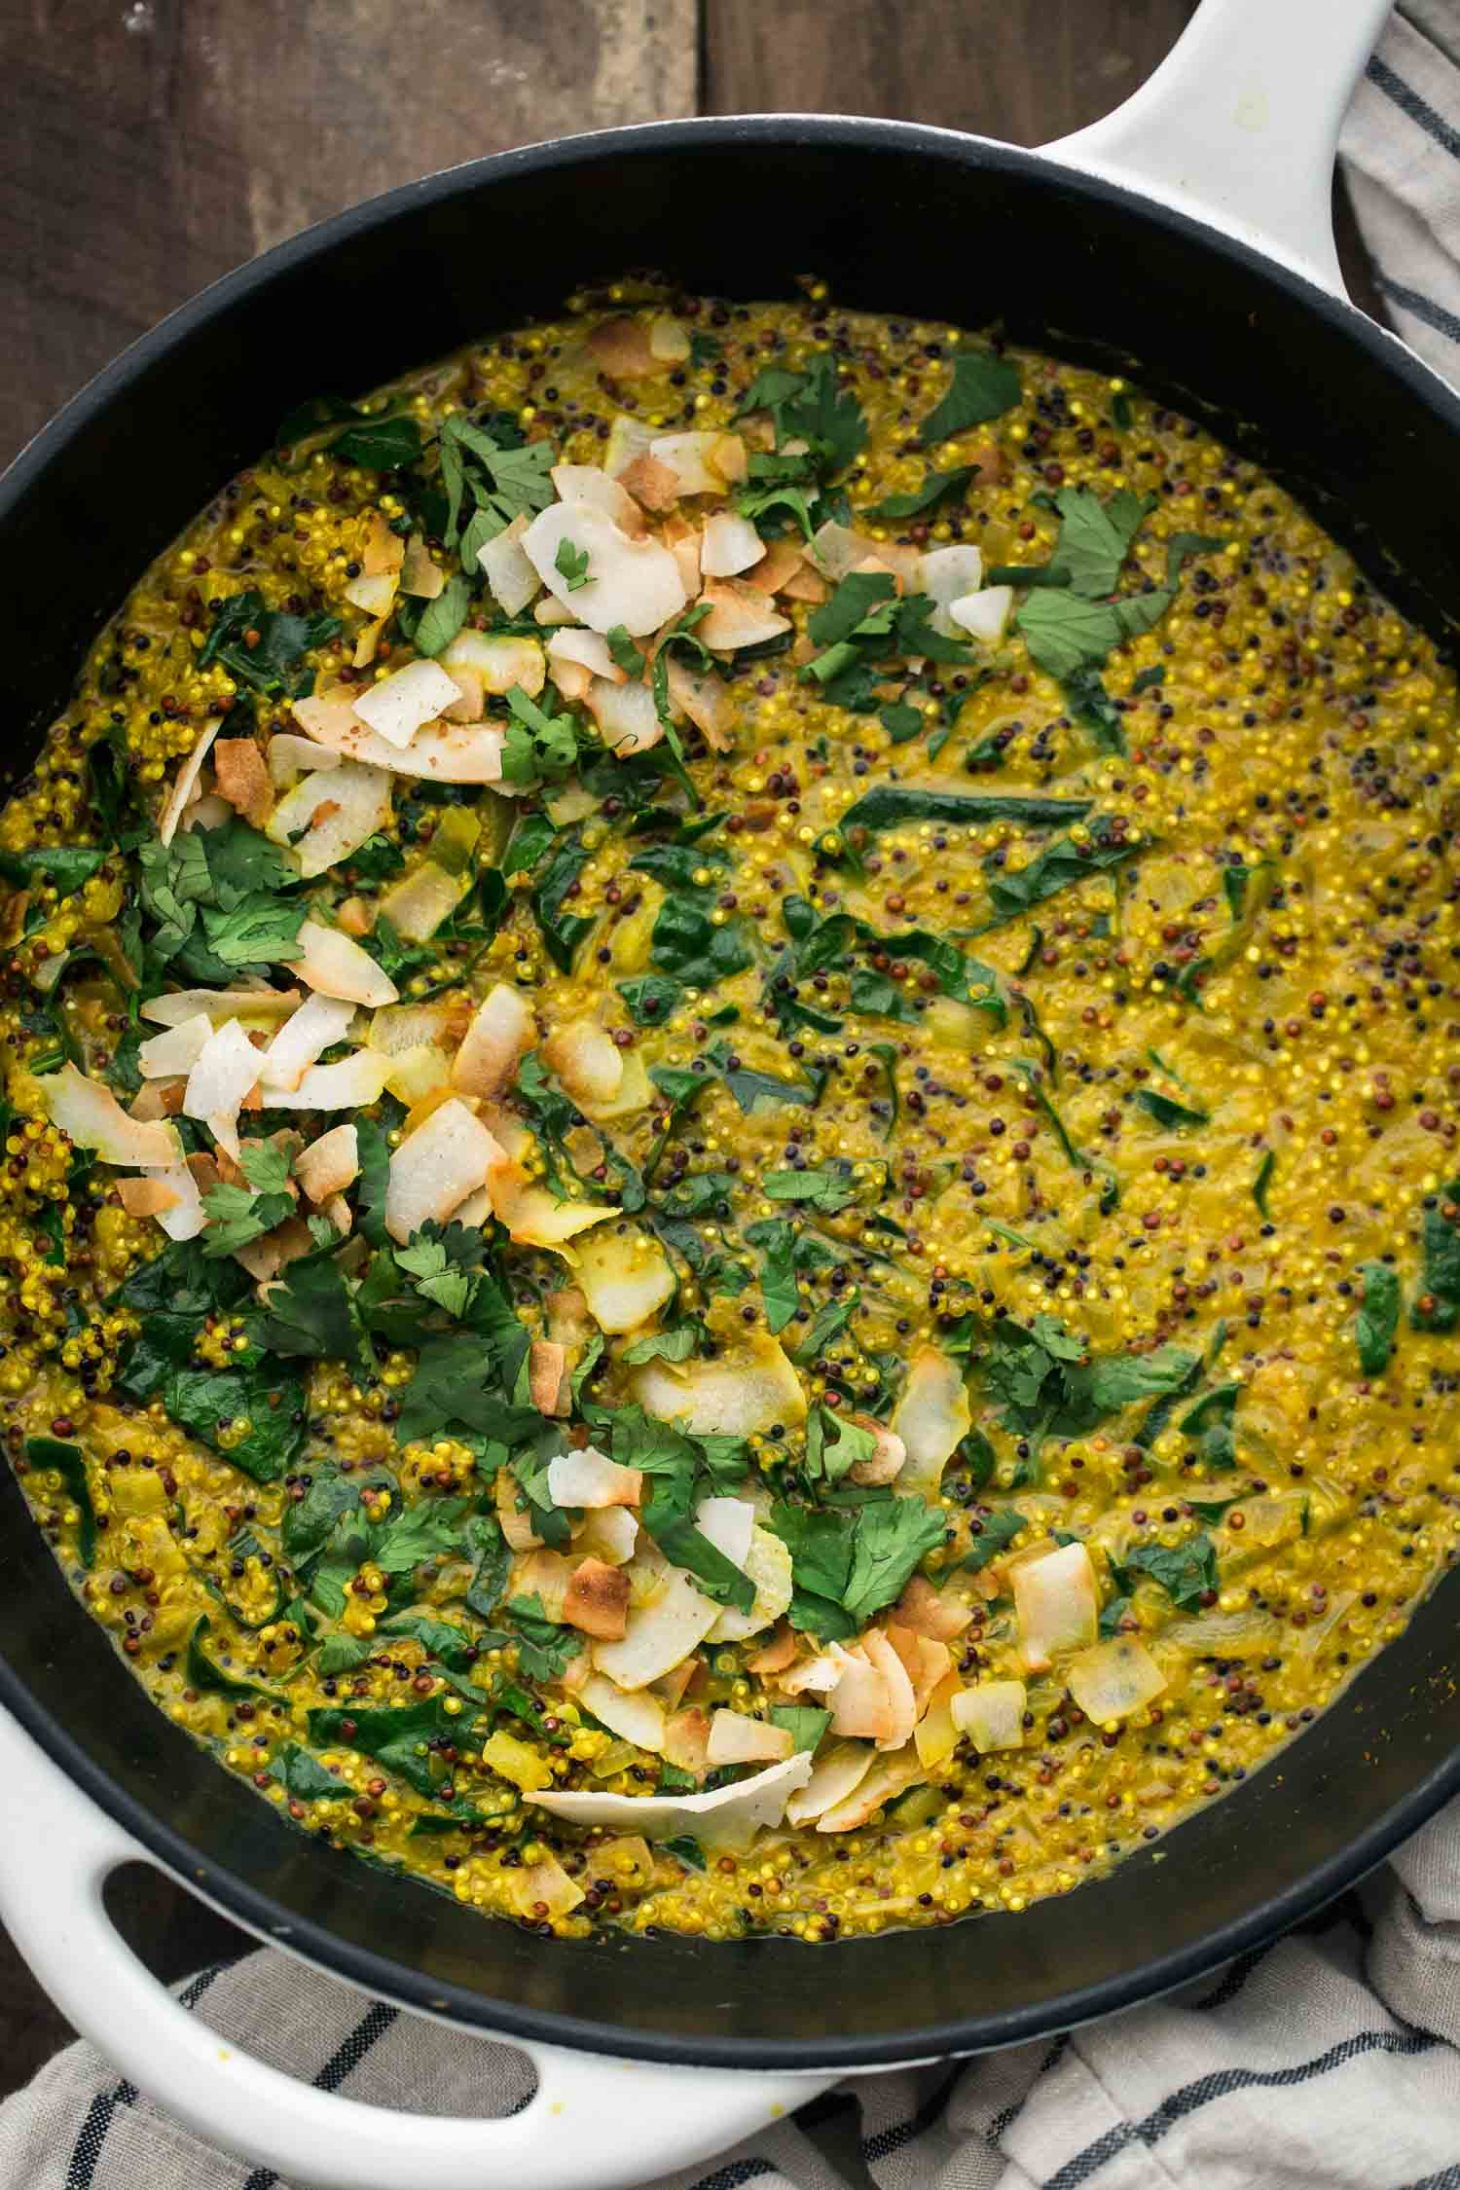 Coconut turmeric quinoa with kale naturally ella coconut turmeric quinoa naturally ella forumfinder Image collections